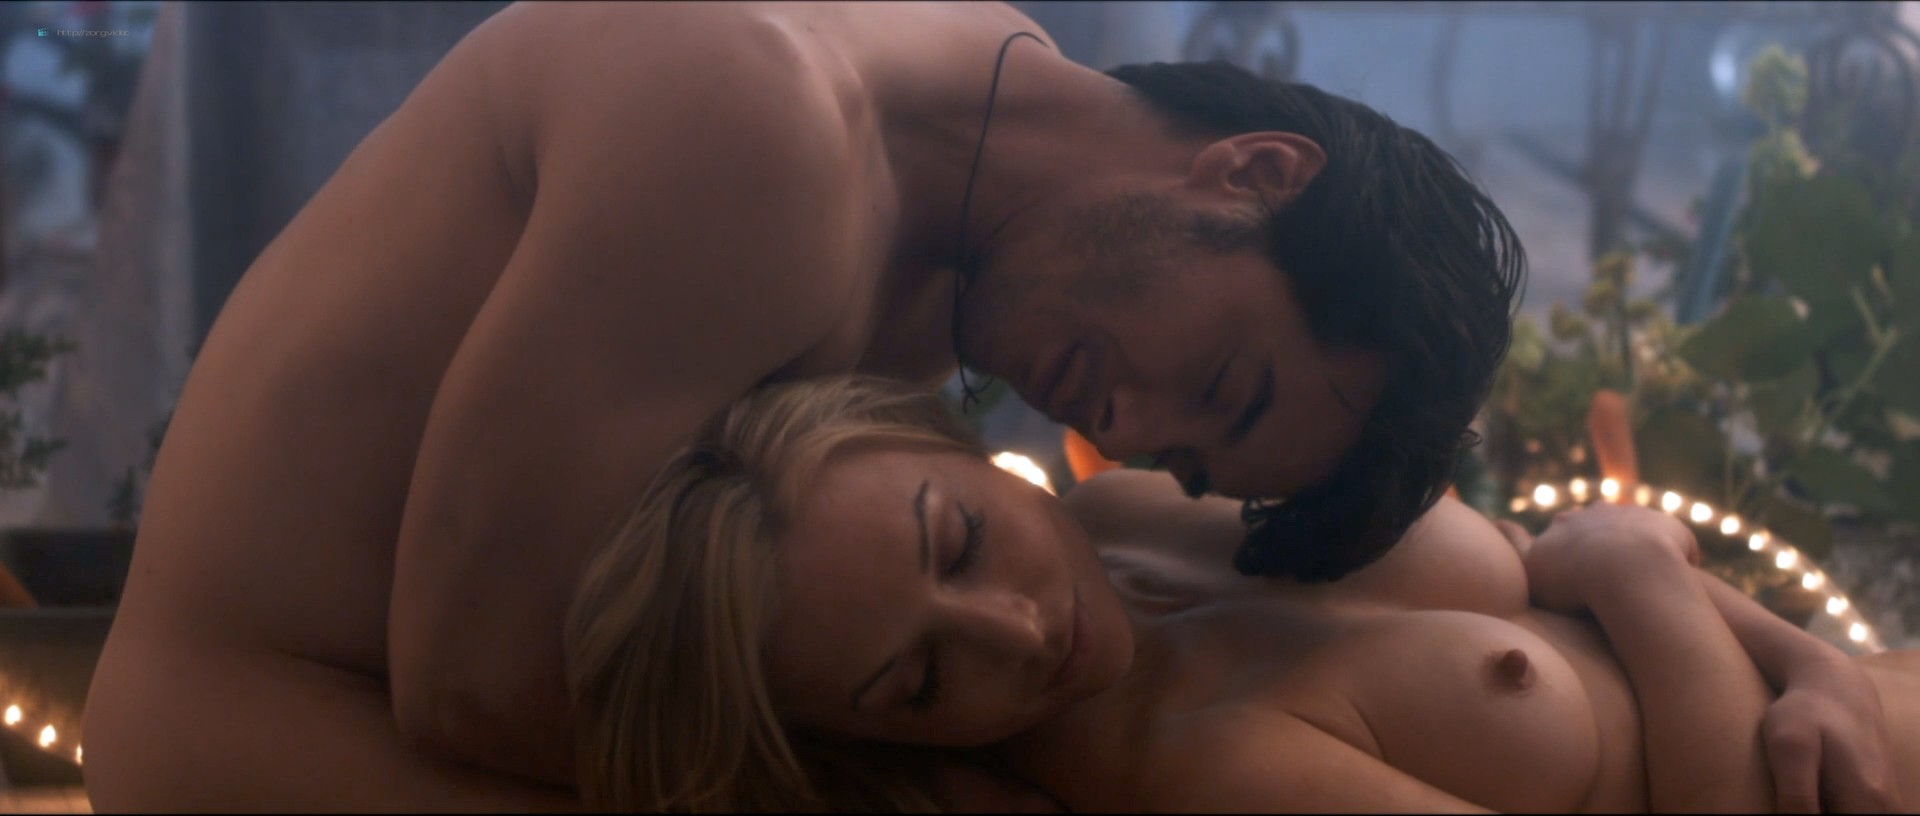 Kayden Kross nude and sex Nicole D'Angelo, Brooke Haven and others nude too - Blue Dream (2013) 1080p (2)